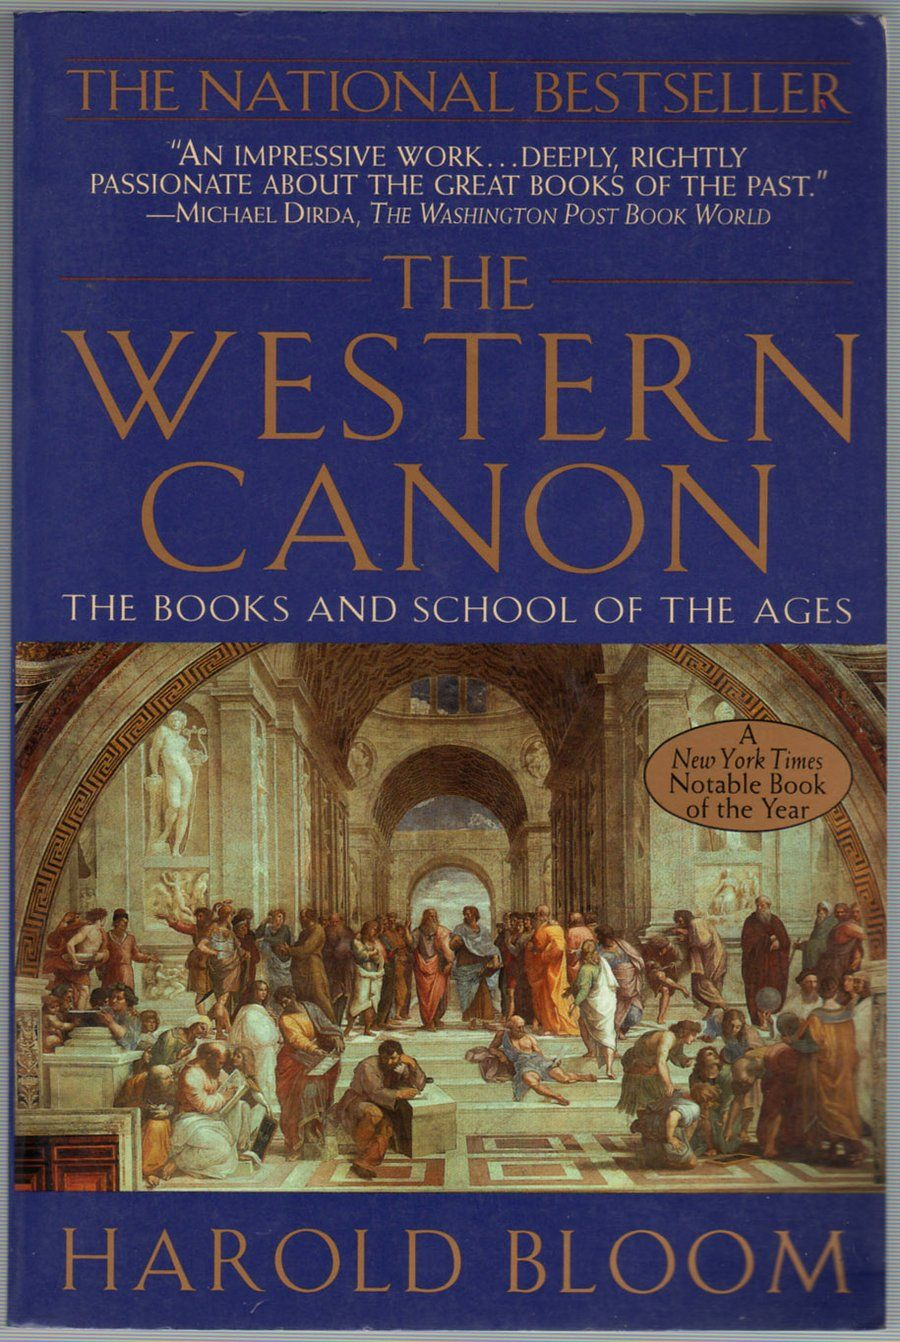 Image result for harold bloom western canon